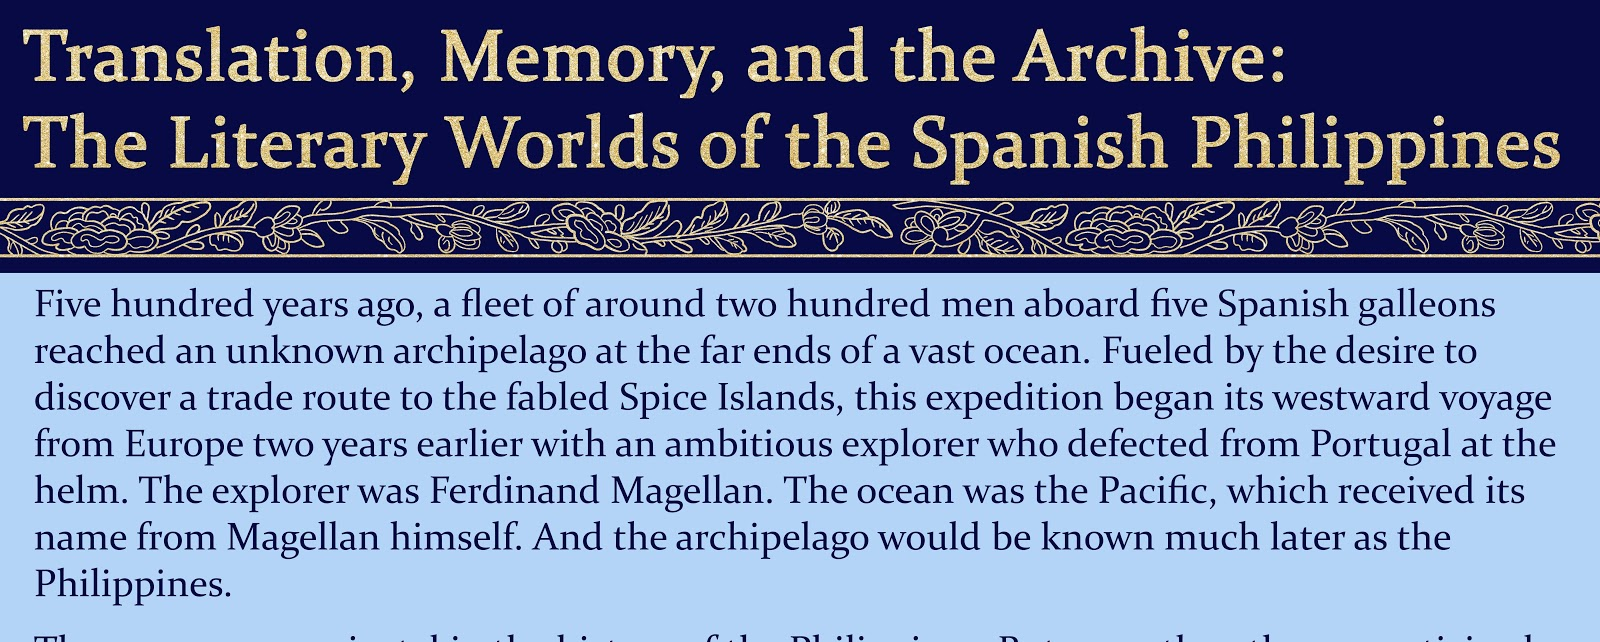 "our images representing the wall panels for the exhibit. The first panel has a blue background with gold text that reads ""Translation, Memory, and the Archive: The Literary Worlds of the Spanish Philippines,"" and in black text at the bottom, a paragraph describes Magellan landing in the Philippines. The second panel has a dark red background and a gold title reading ""First Encounters."" The third panel has a dark green background, a gold title reading ""Filipino Enlightenment,"" and many paintings by Juan Luna are organized in rows. The fourth image has a dark blue background, a gold title reading ""The Golden Age,"" and pages from various newspapers published in the Philippines are organized in rows."